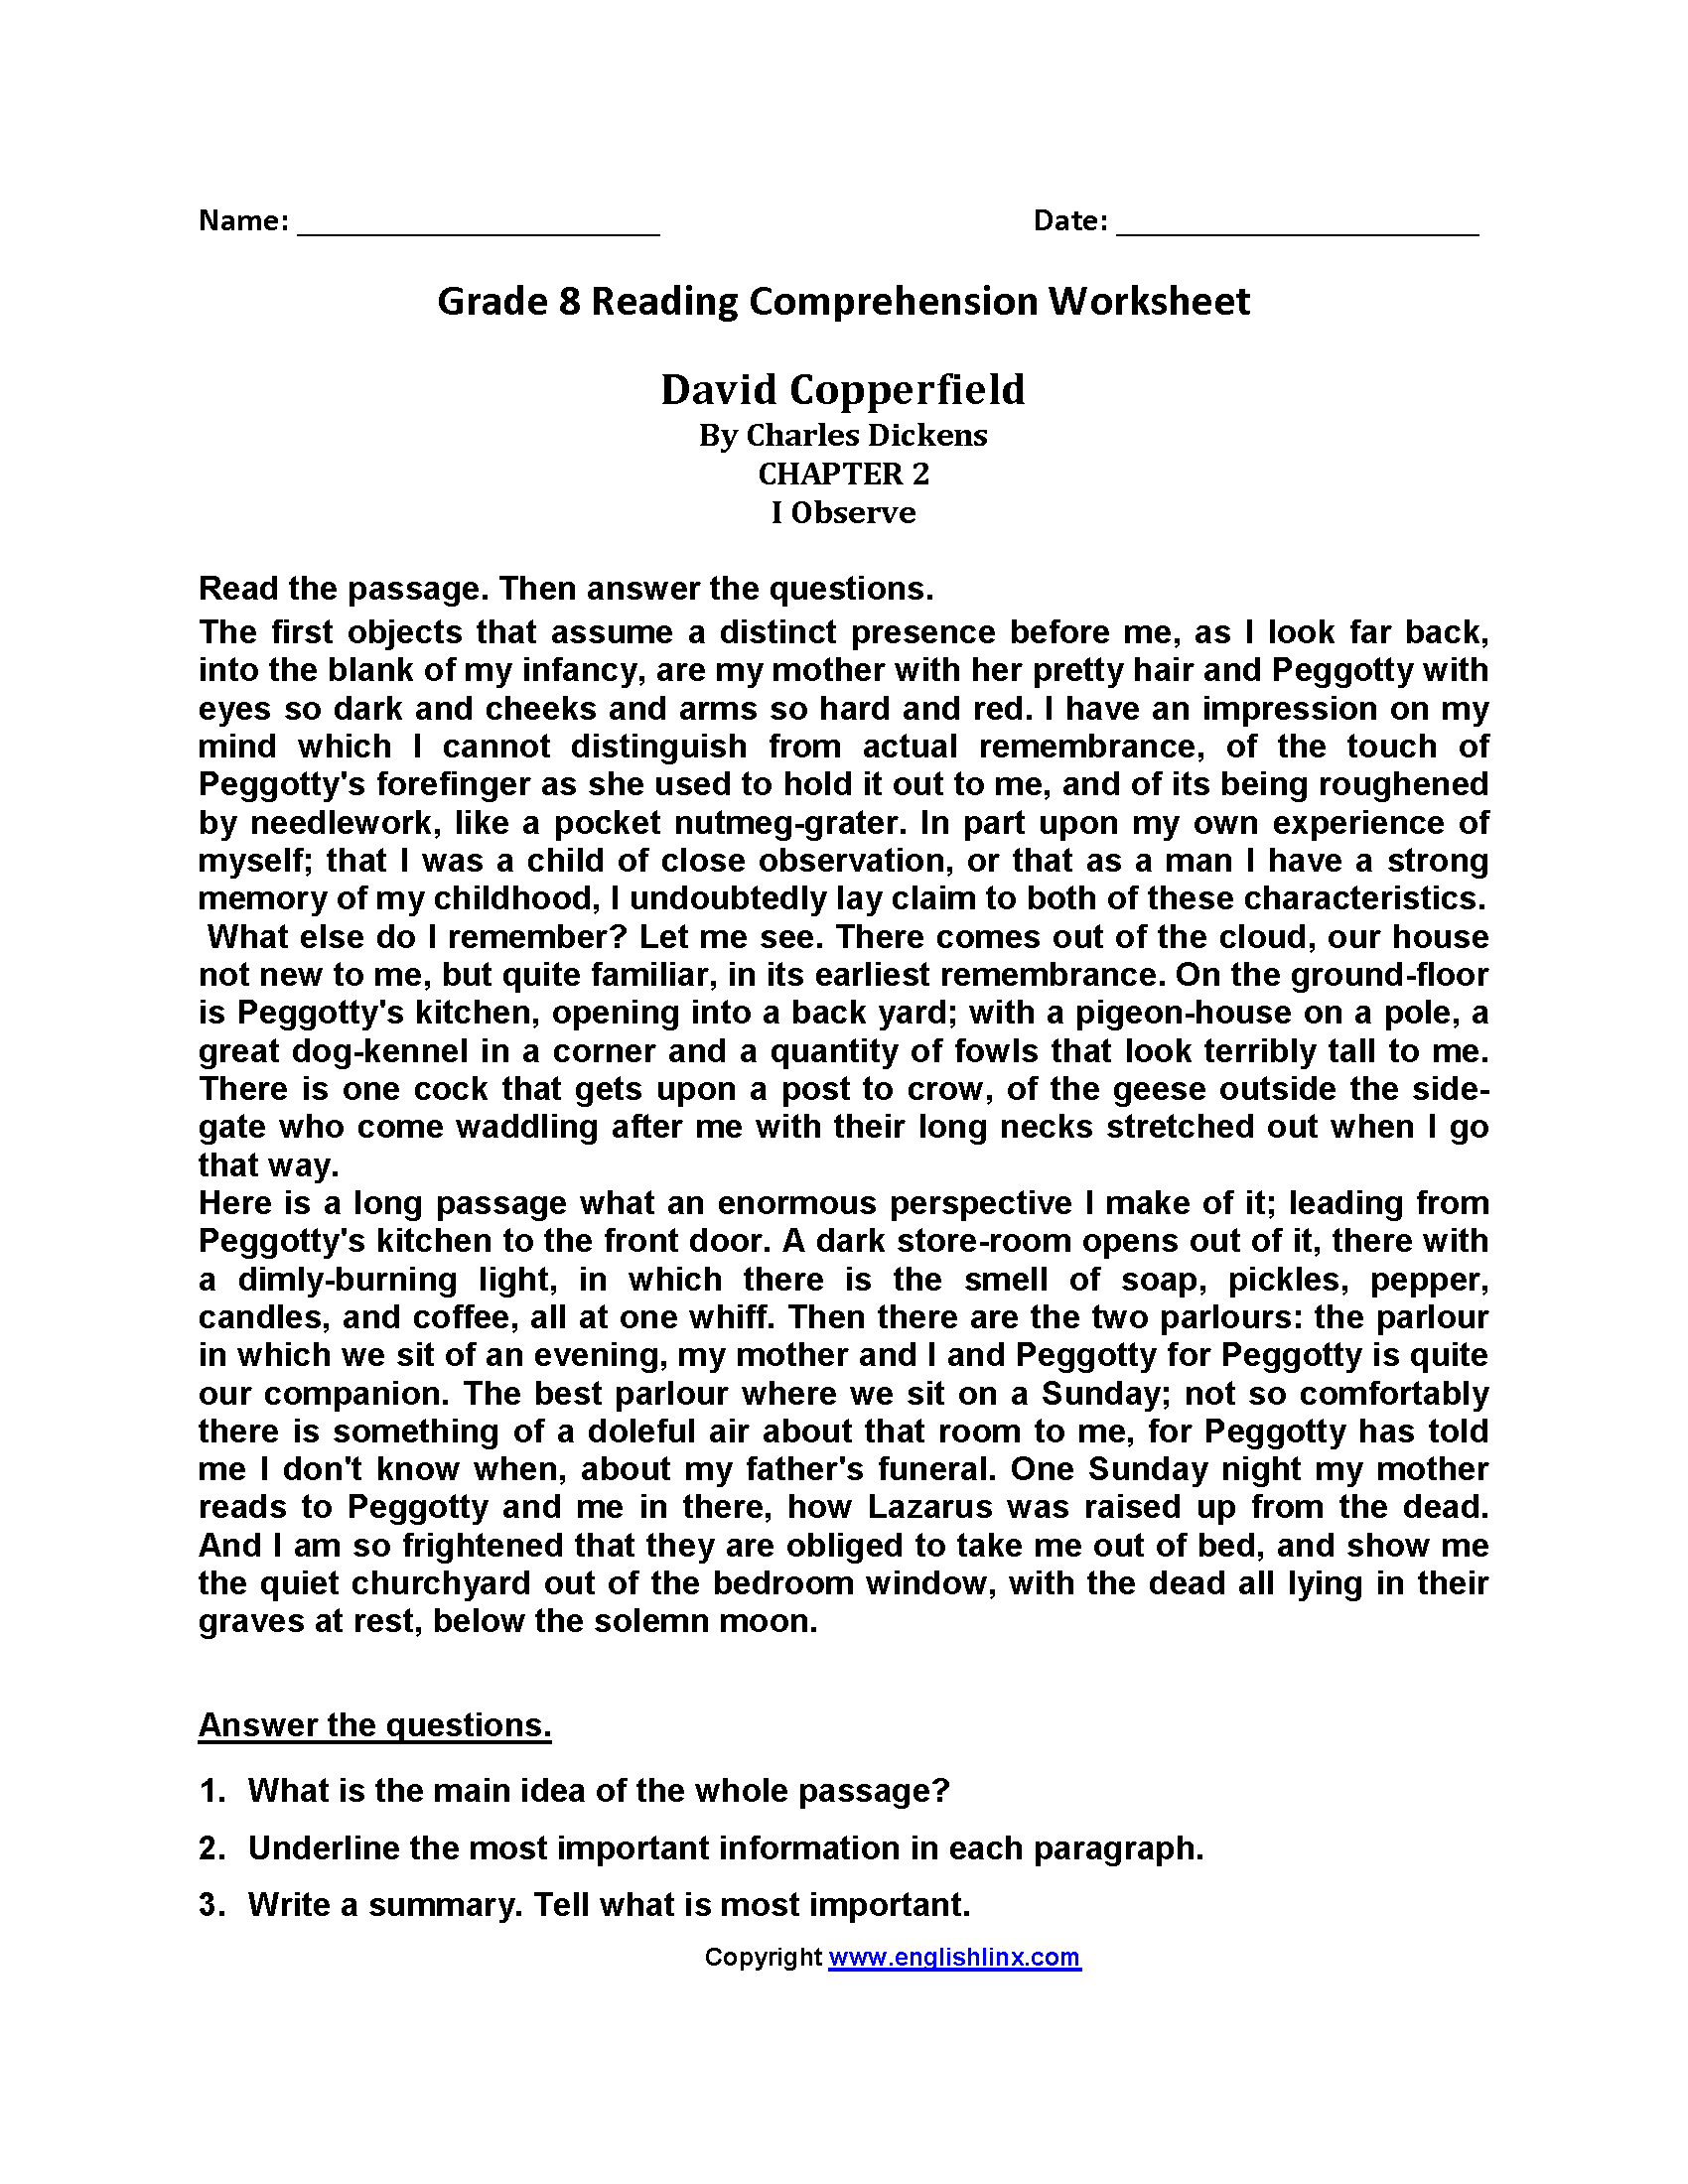 David Copperfield Eighth Grade Reading Worksheets